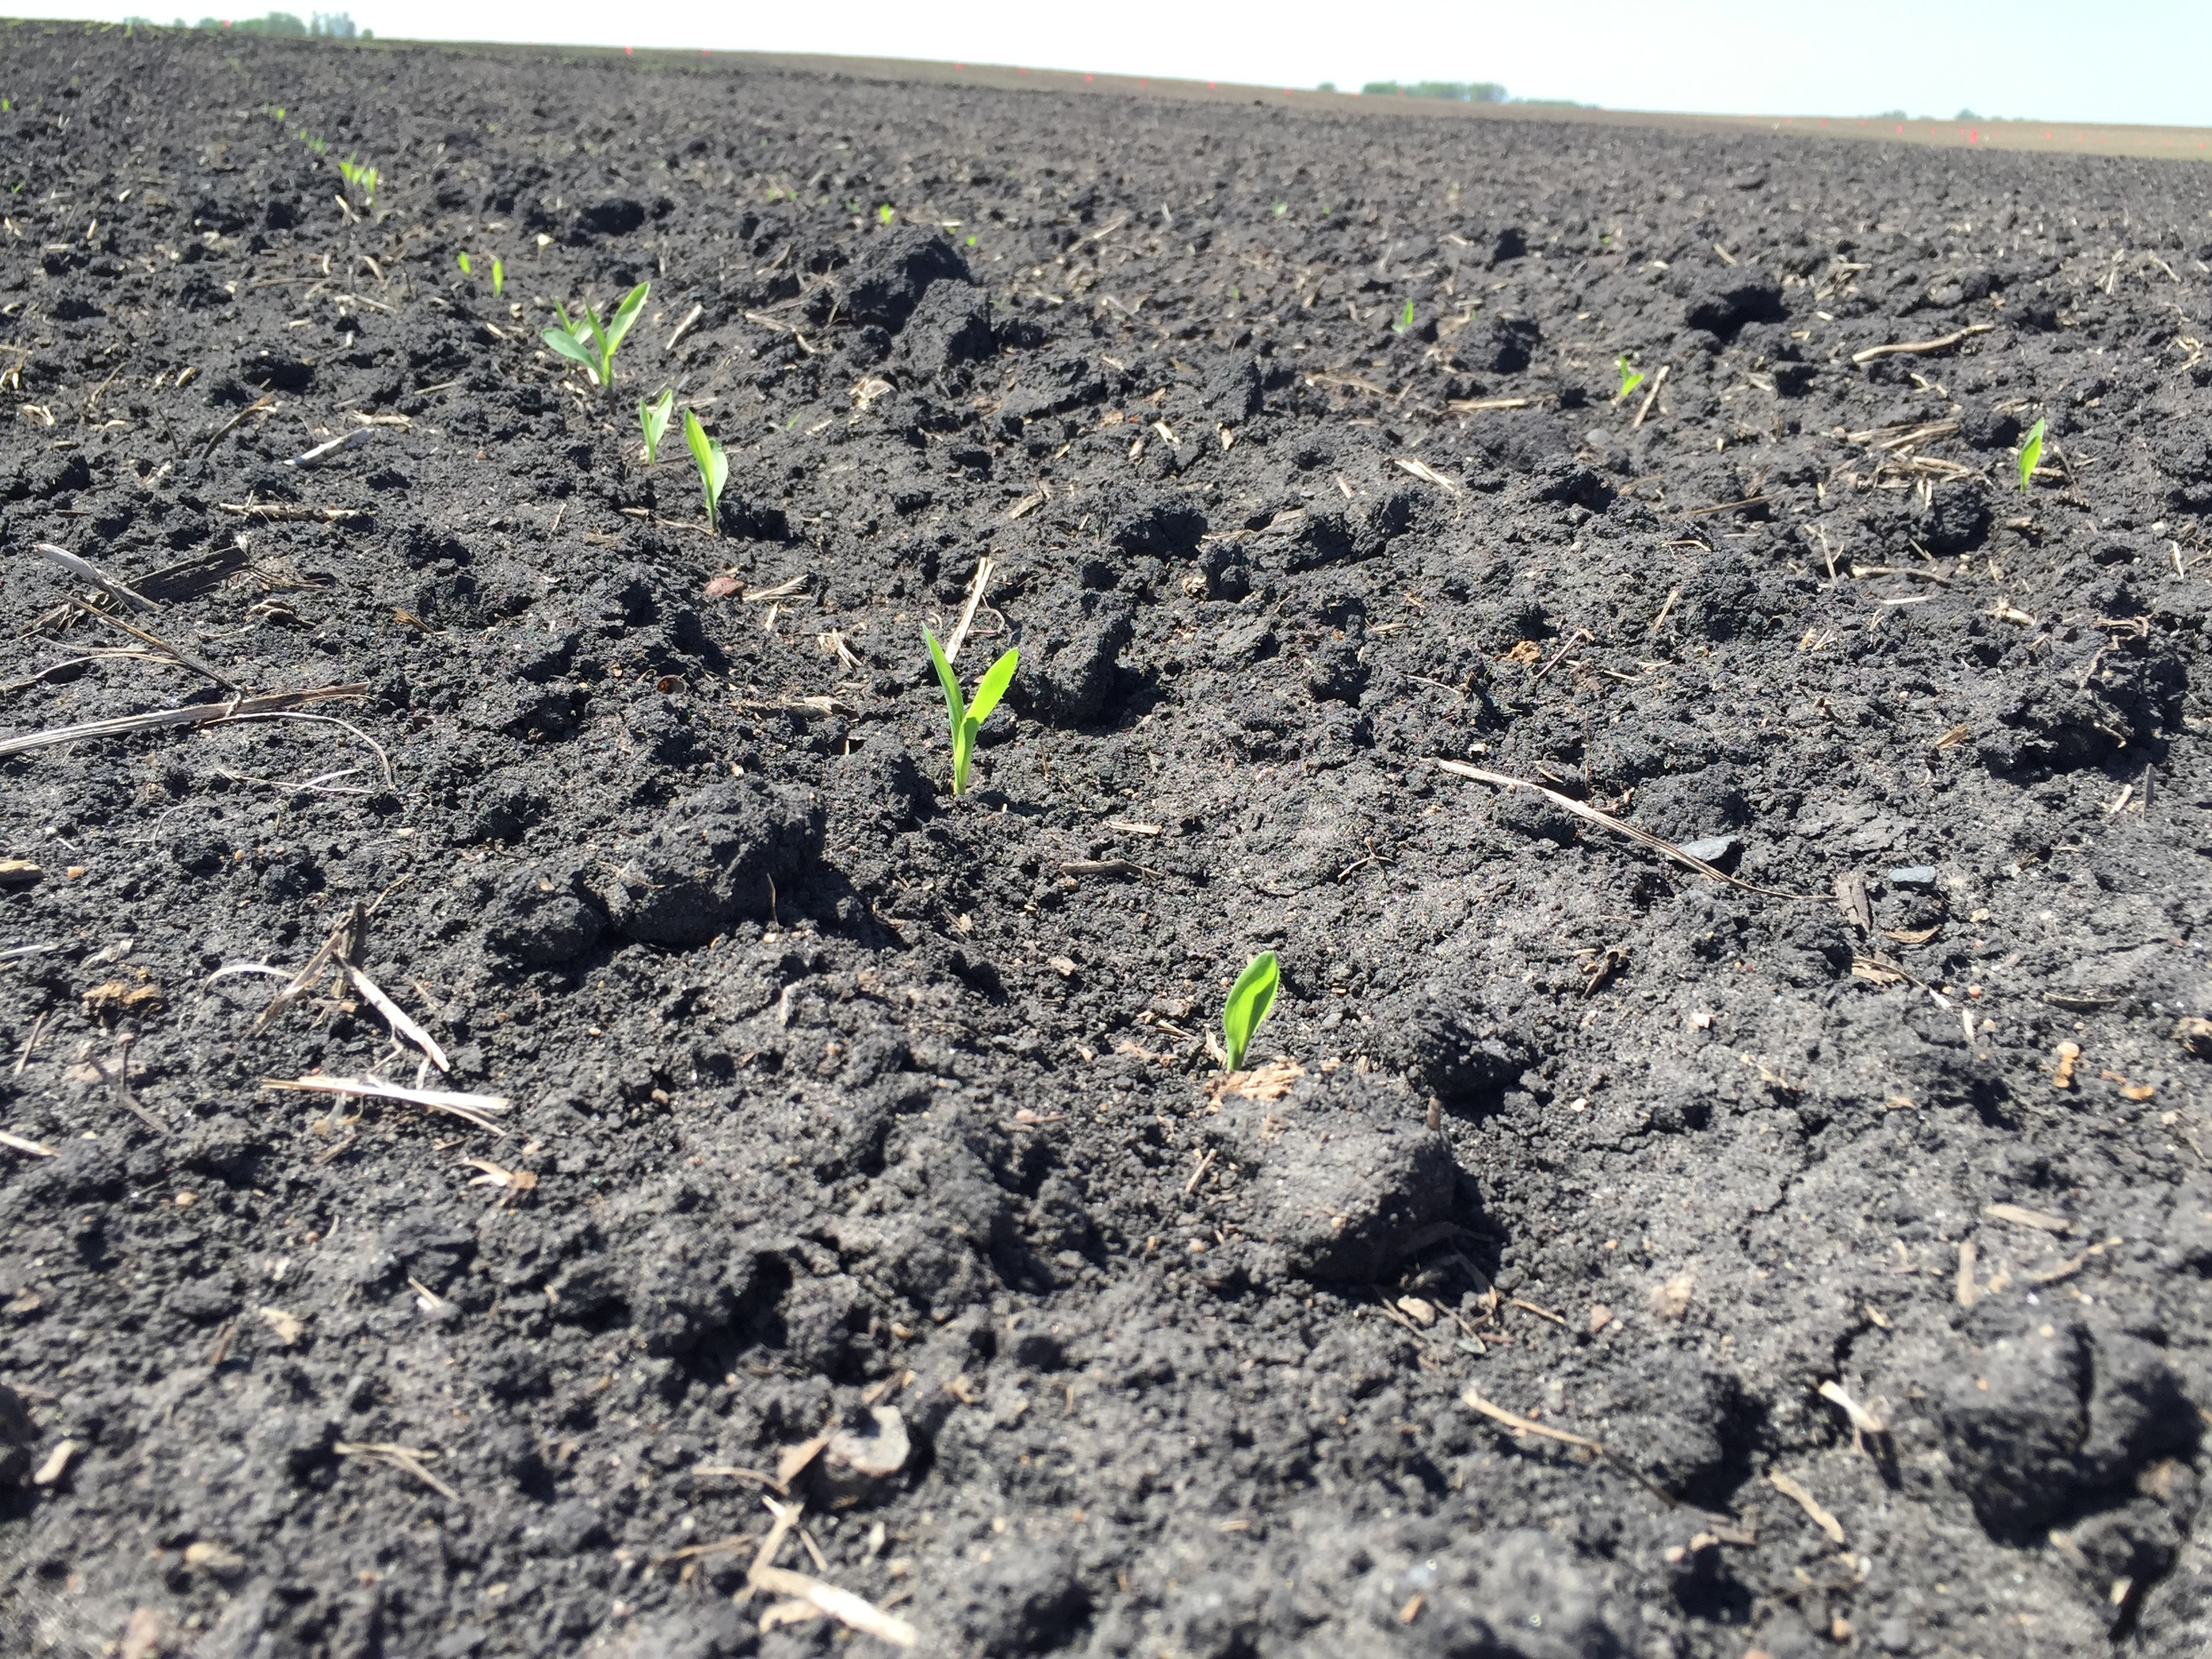 Sweetcorn poking through the earth.